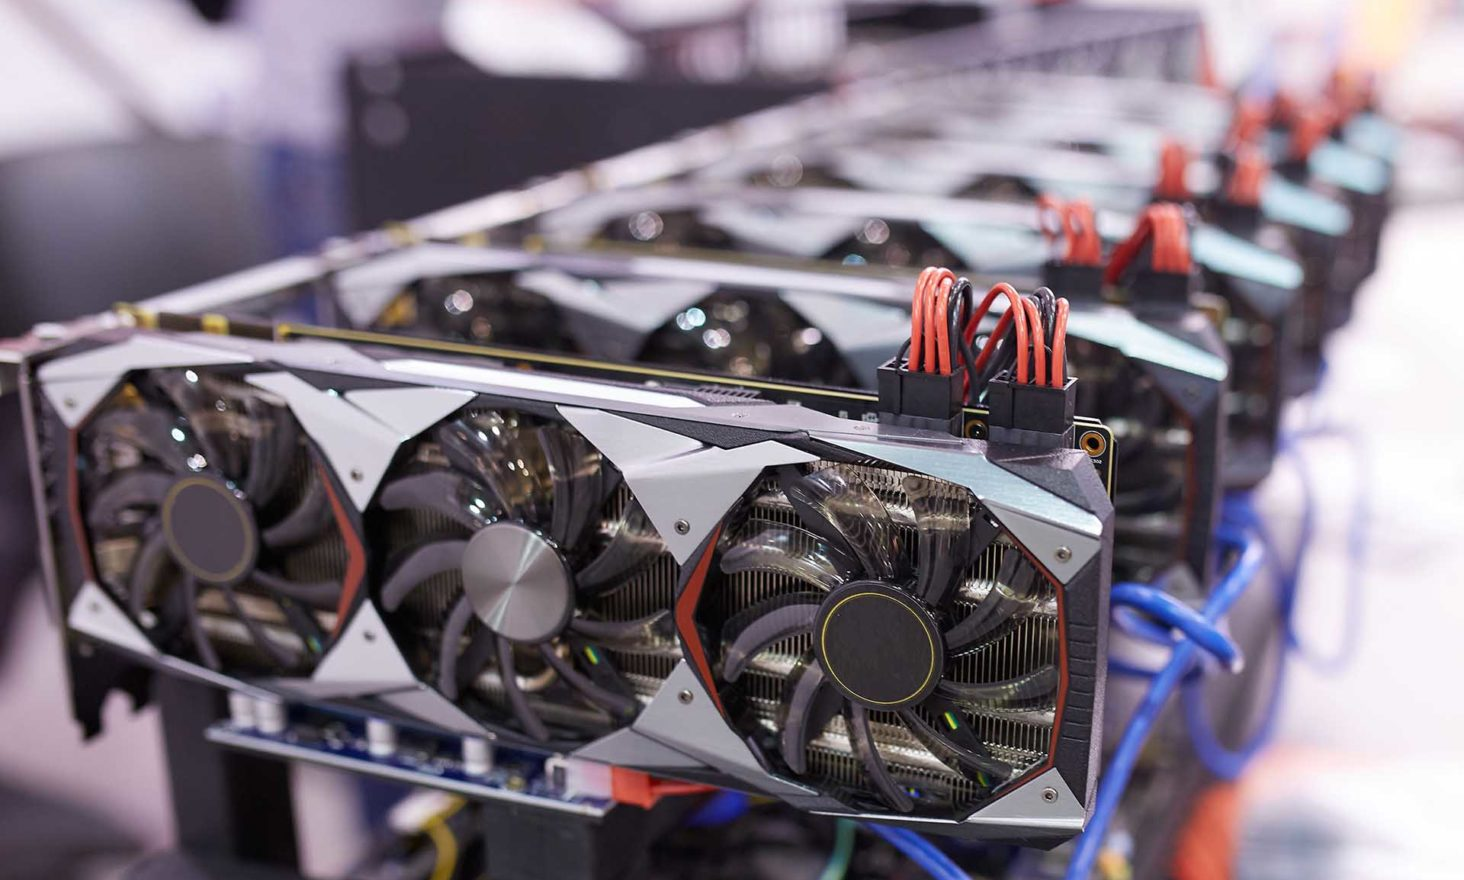 A Washington County is Taking Steps to Halt Illegal Cryptocurrency Mining